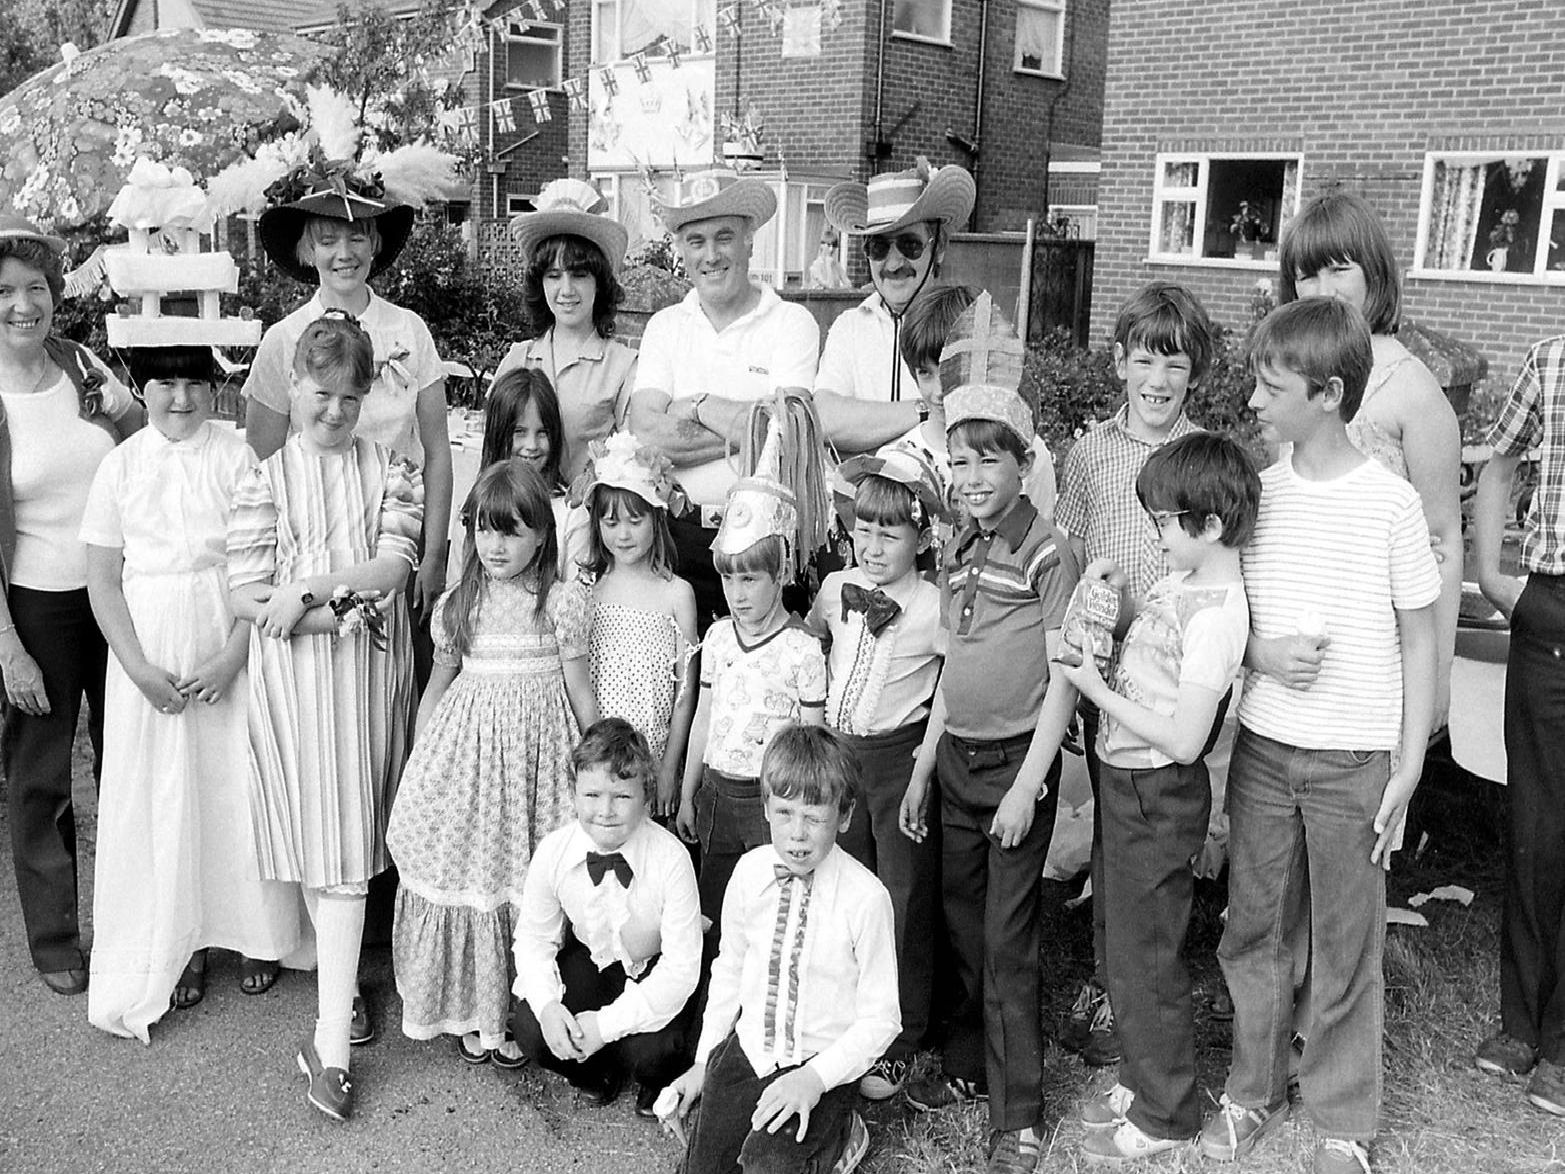 1981: Residents from Kirklington Road celebrate the marriage of Prince Charles and Diana with a good old fashioned street party. Are you on this picture?